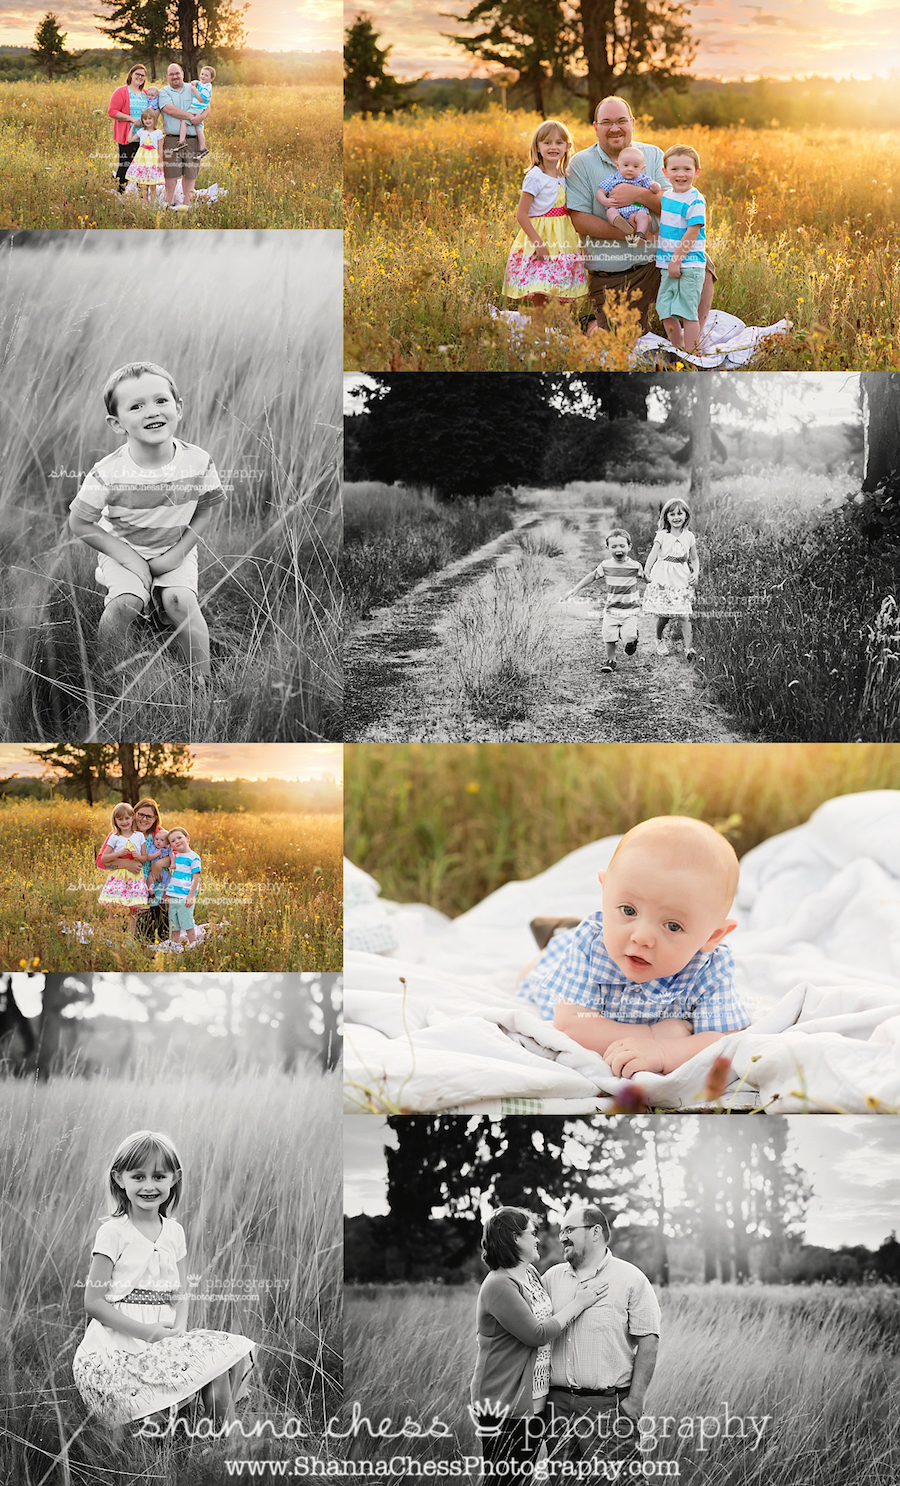 eugene, Oregon family photographer